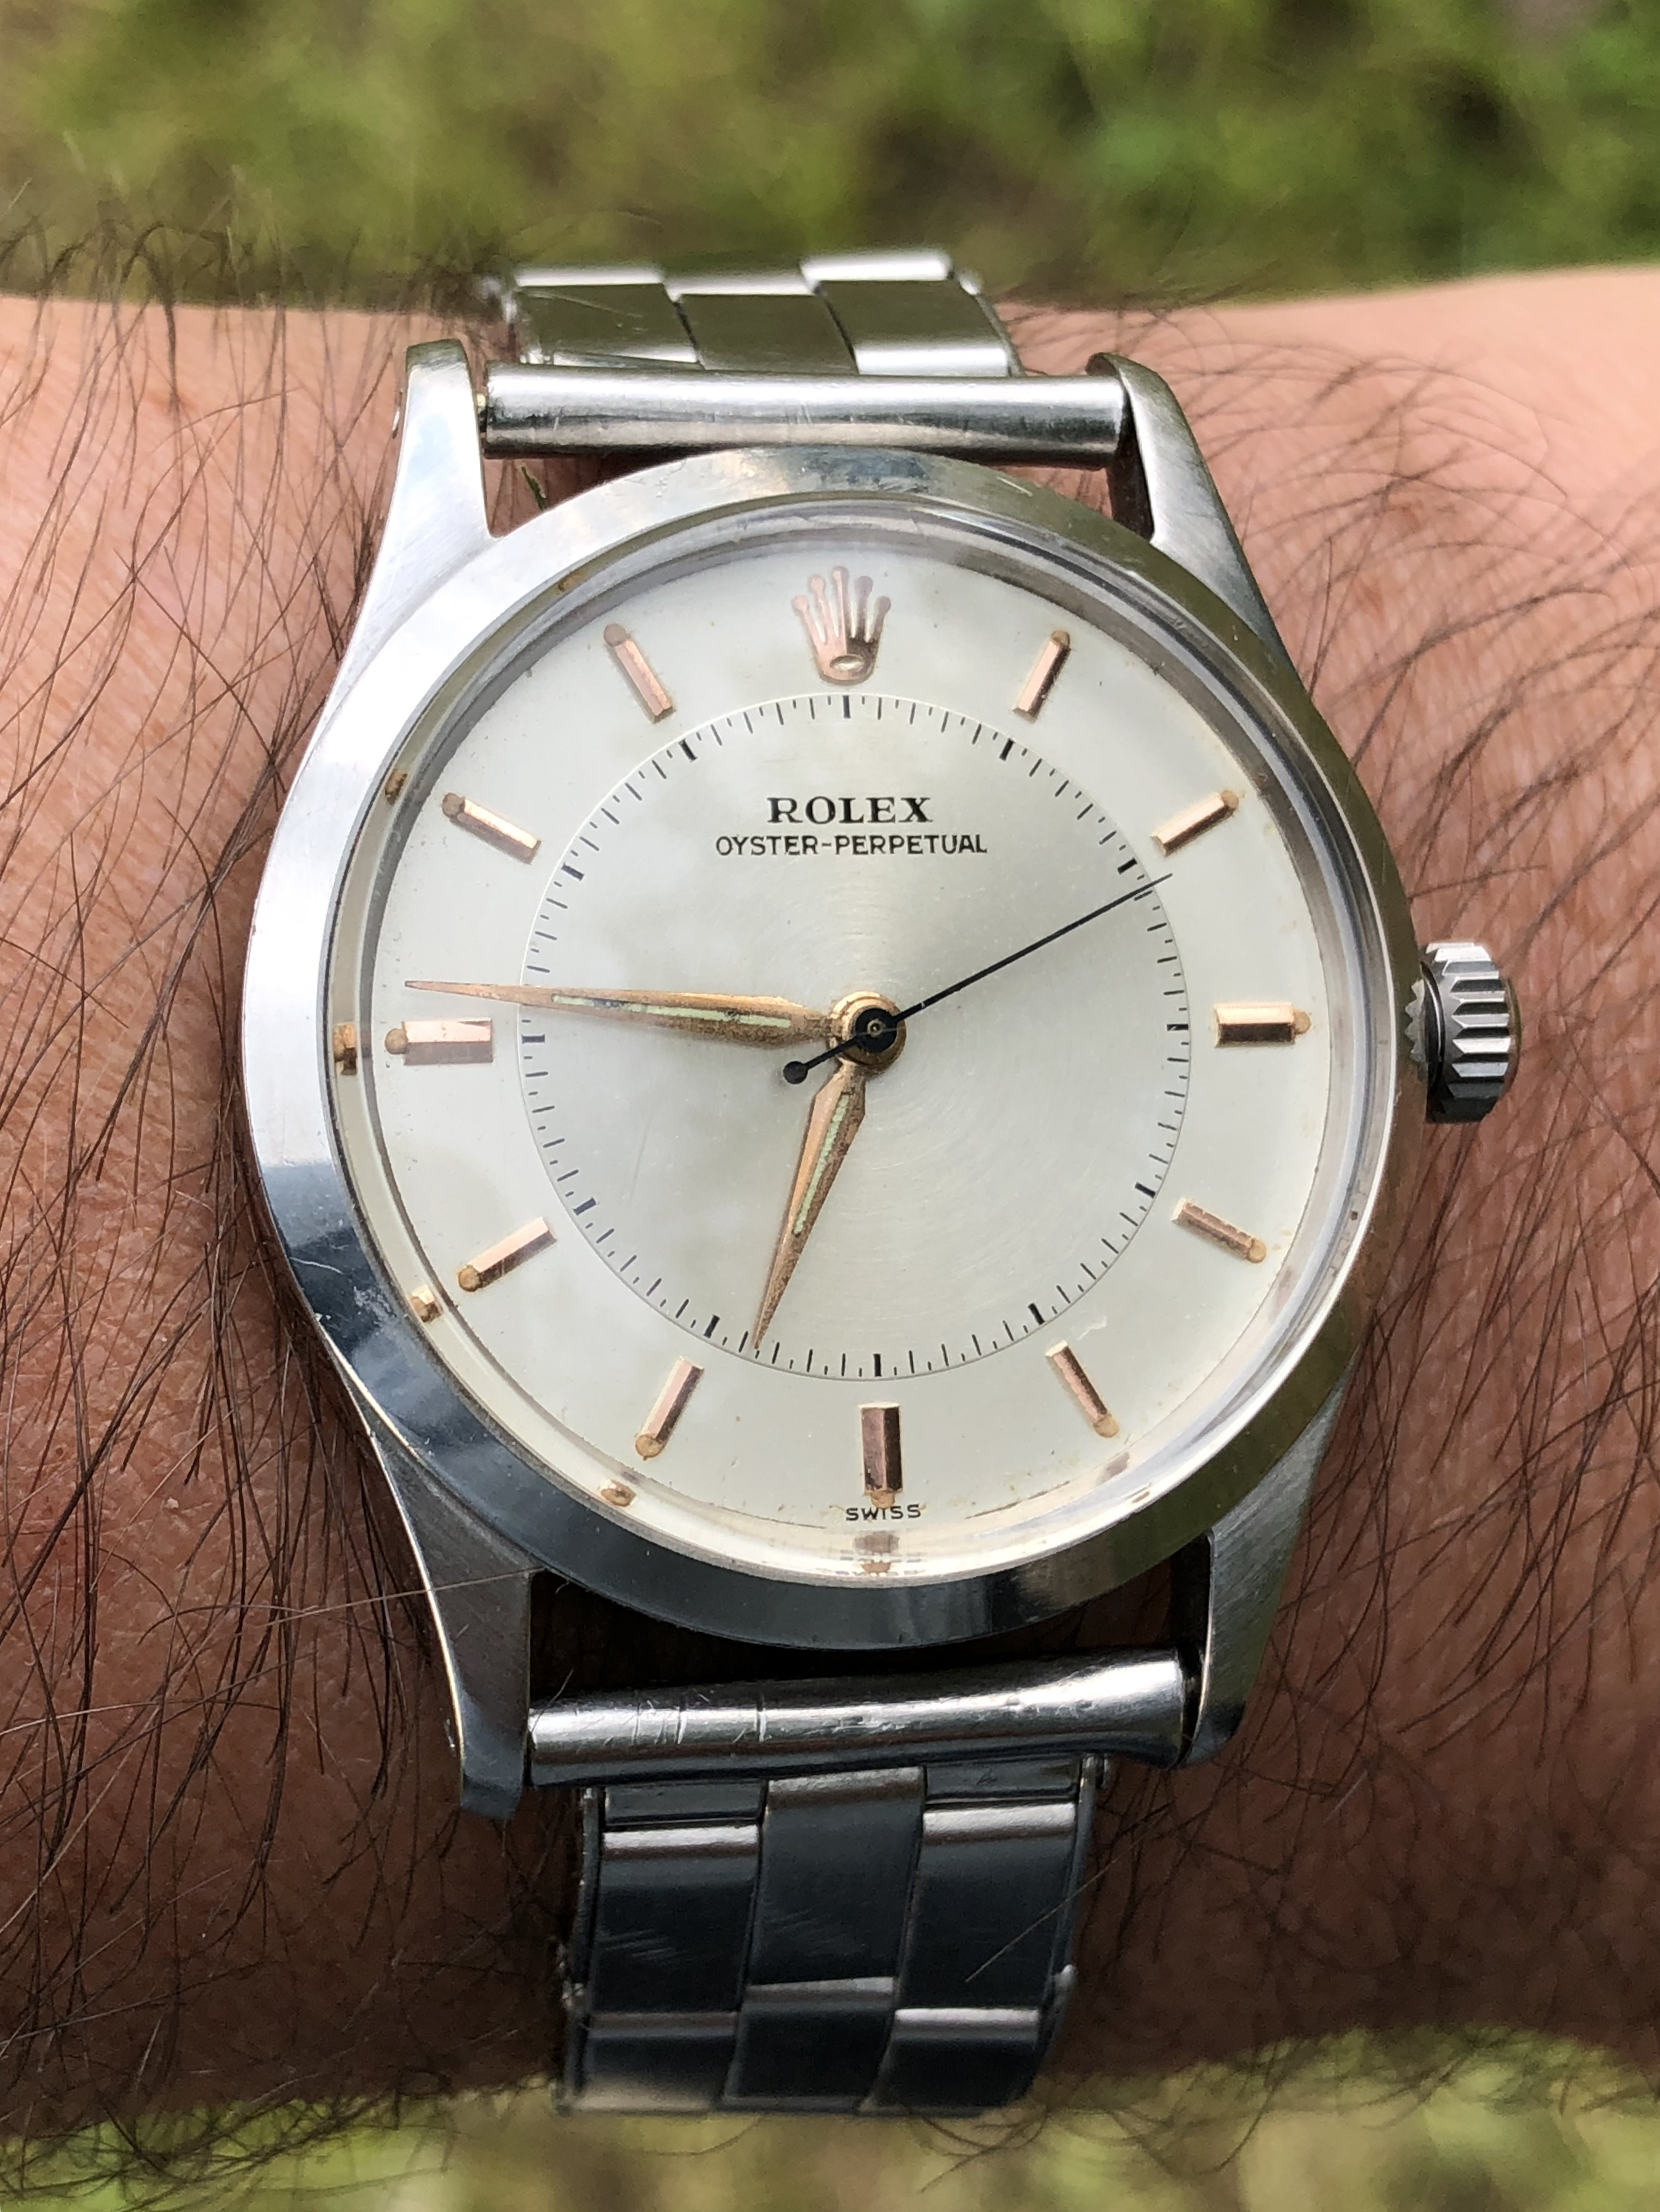 1957 Rolex Oyster Perpetual Deep Sea Reference 6532